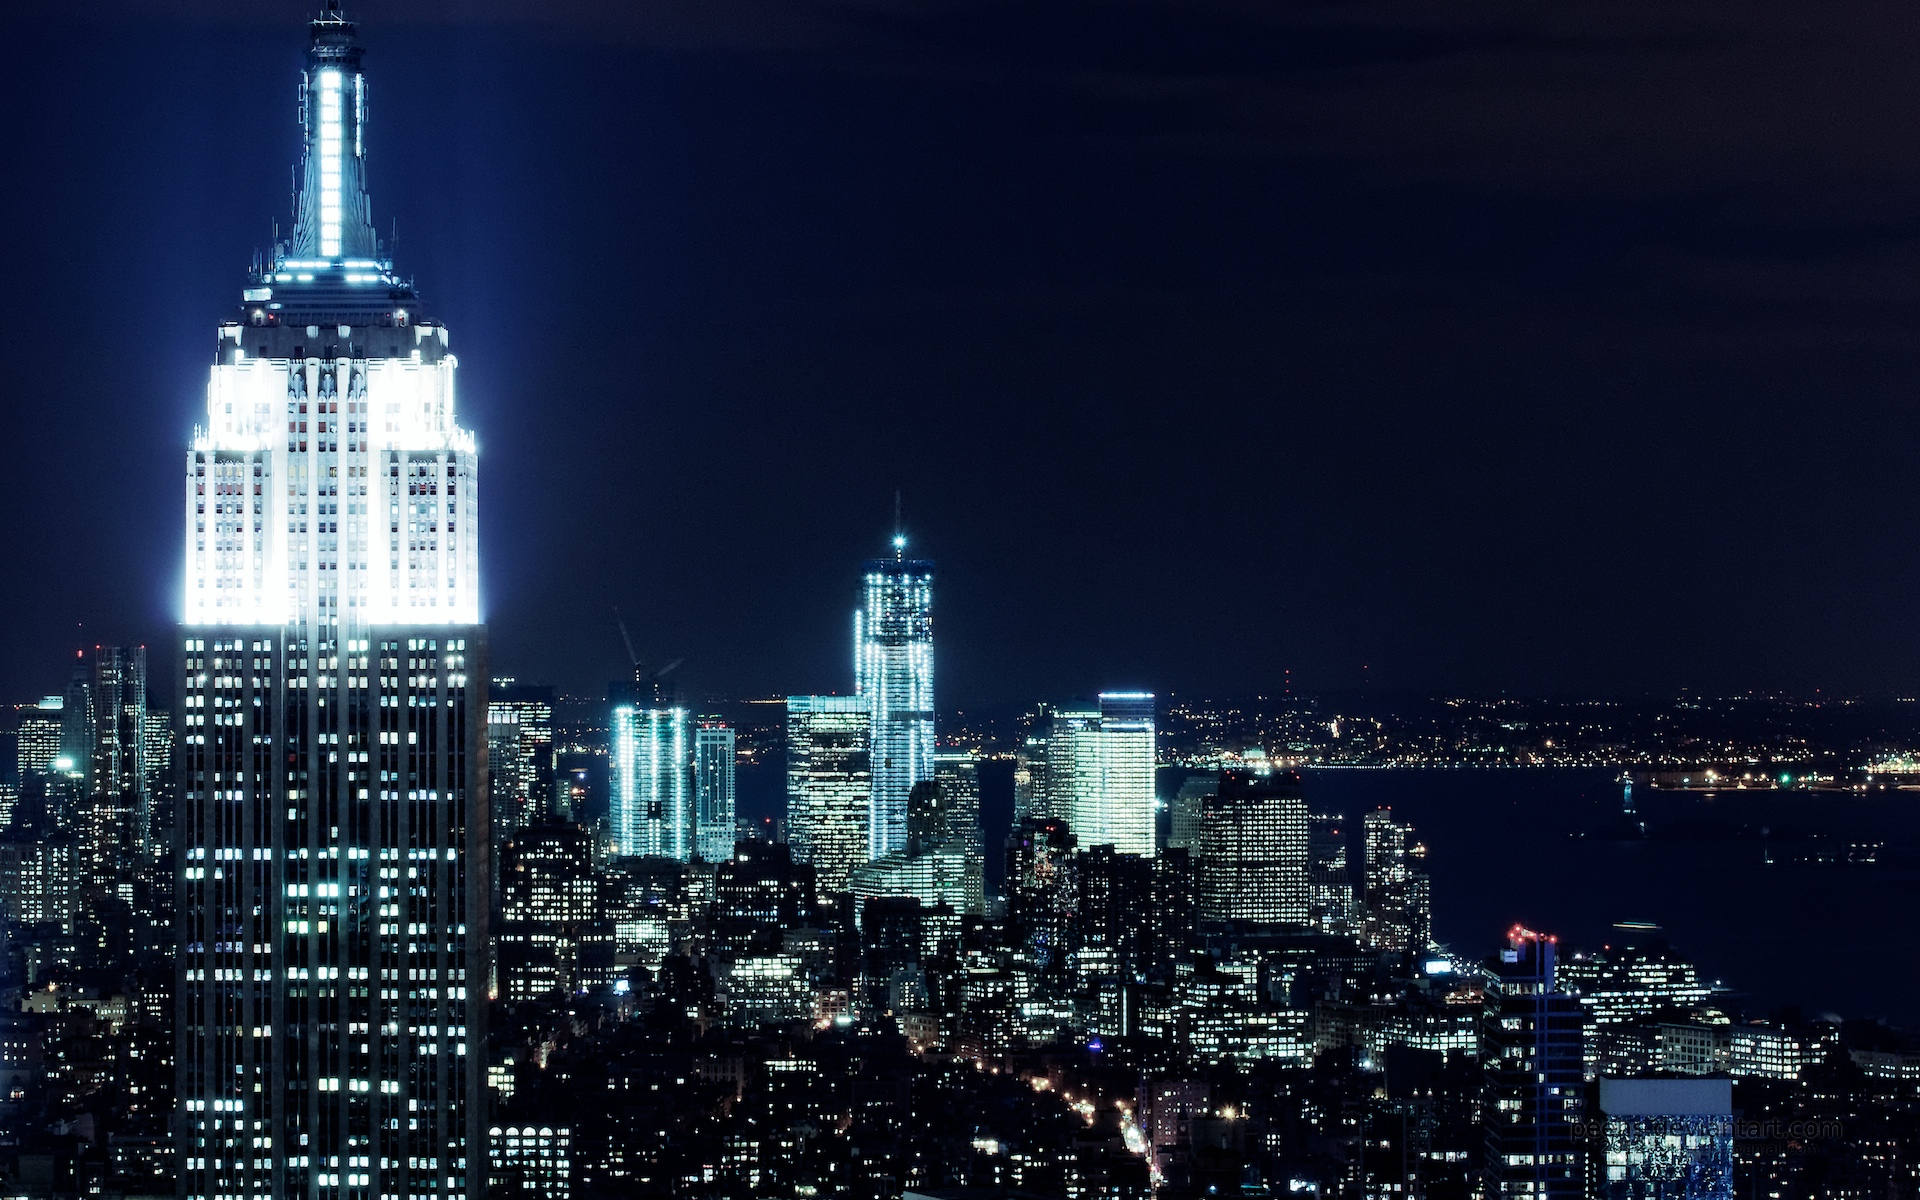 New-York-Wallpaper-Android-City